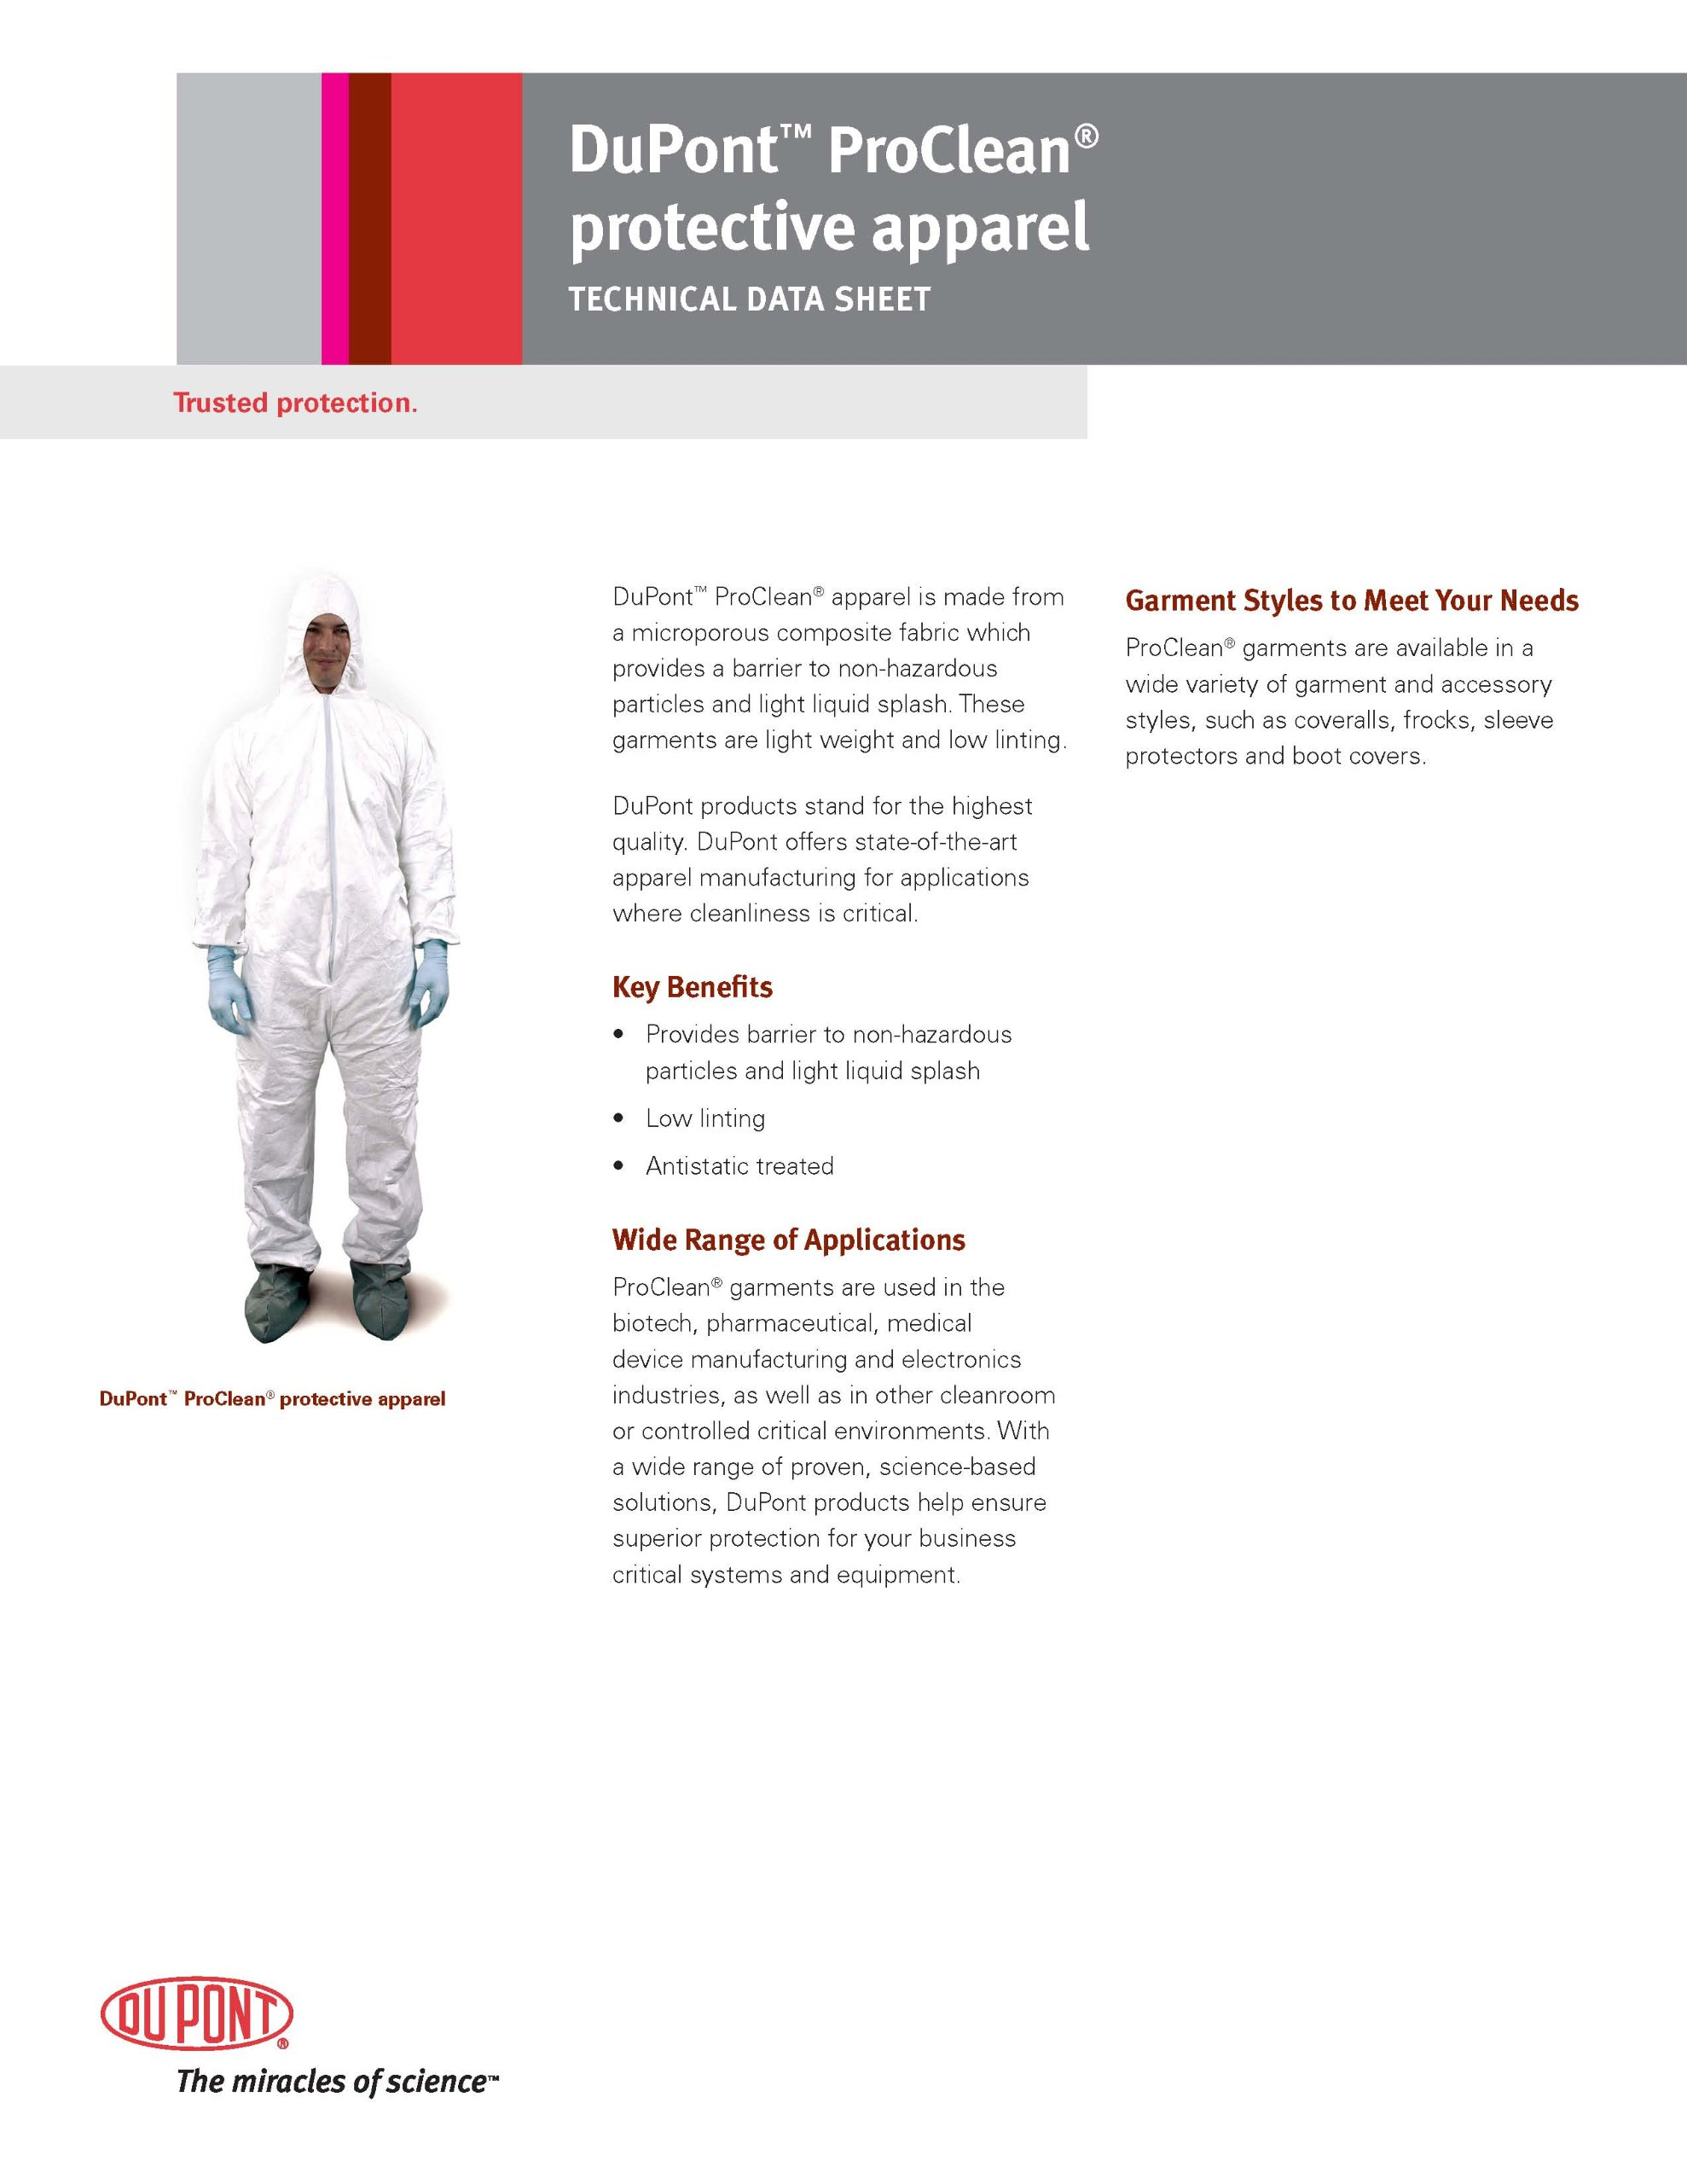 Dupont Tyvek IsoClean IC501B Sleeve, White, Universal Size (Pack of 100) by IsoClean (Image #6)